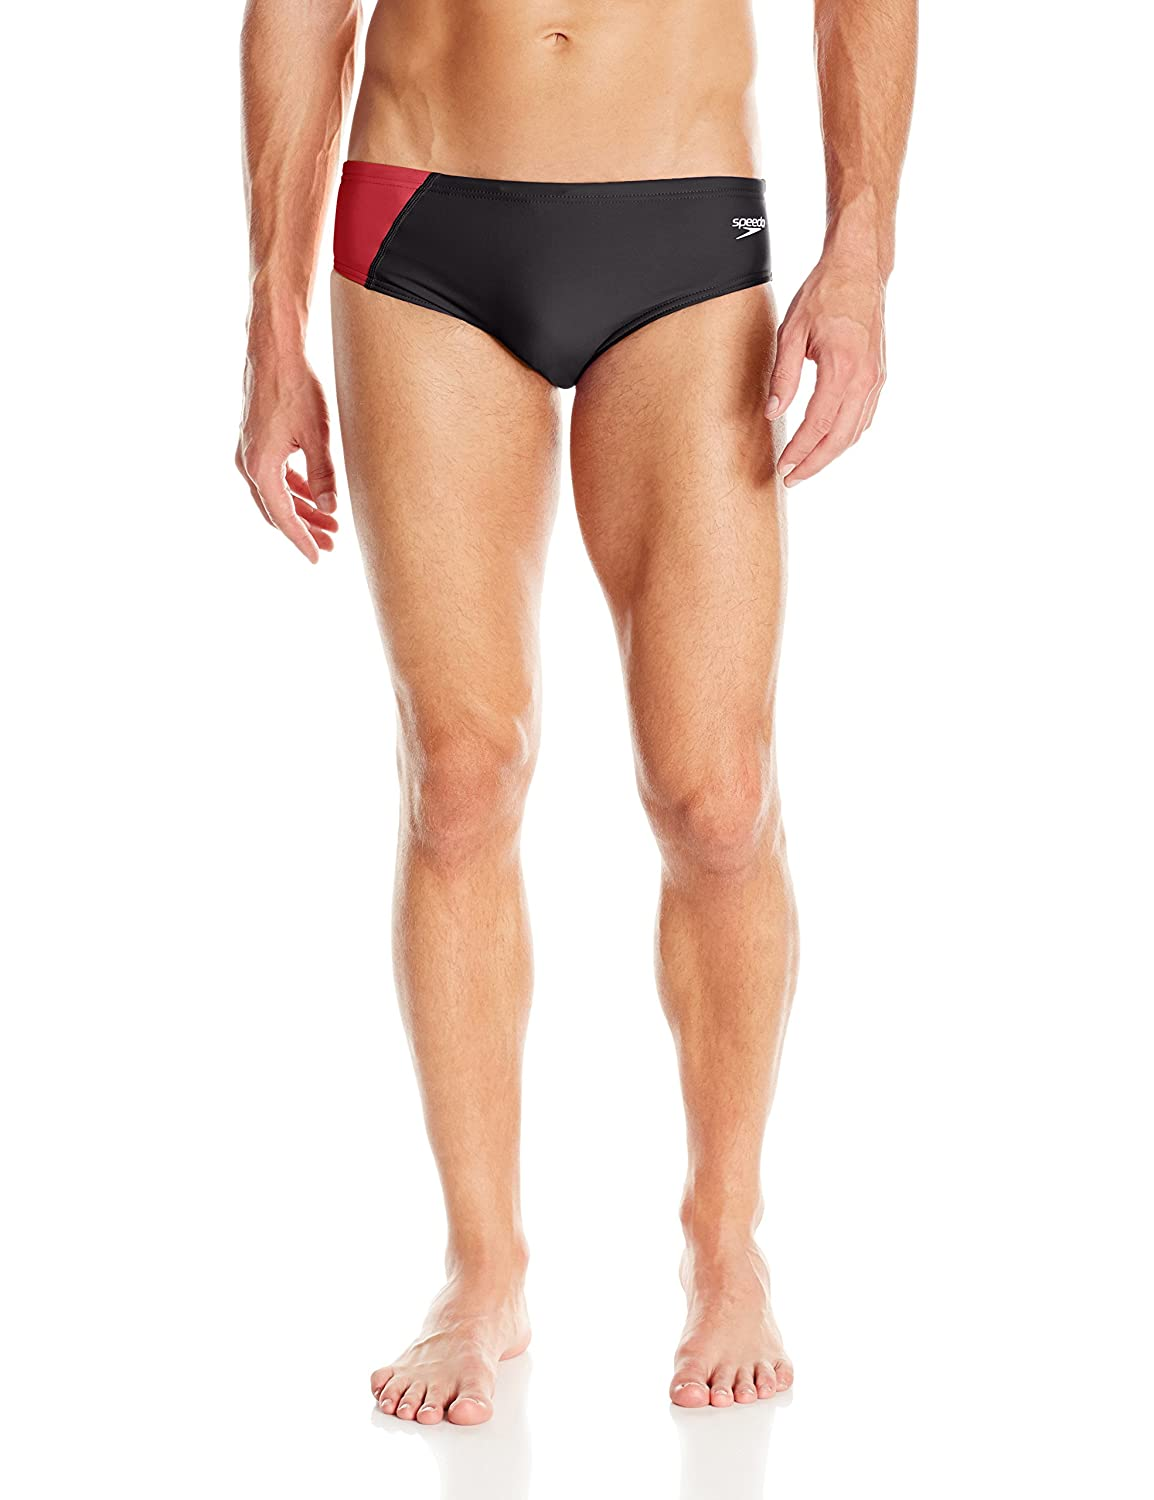 Speedo Men's Revolve Splice Brief Swimsuit 8051651